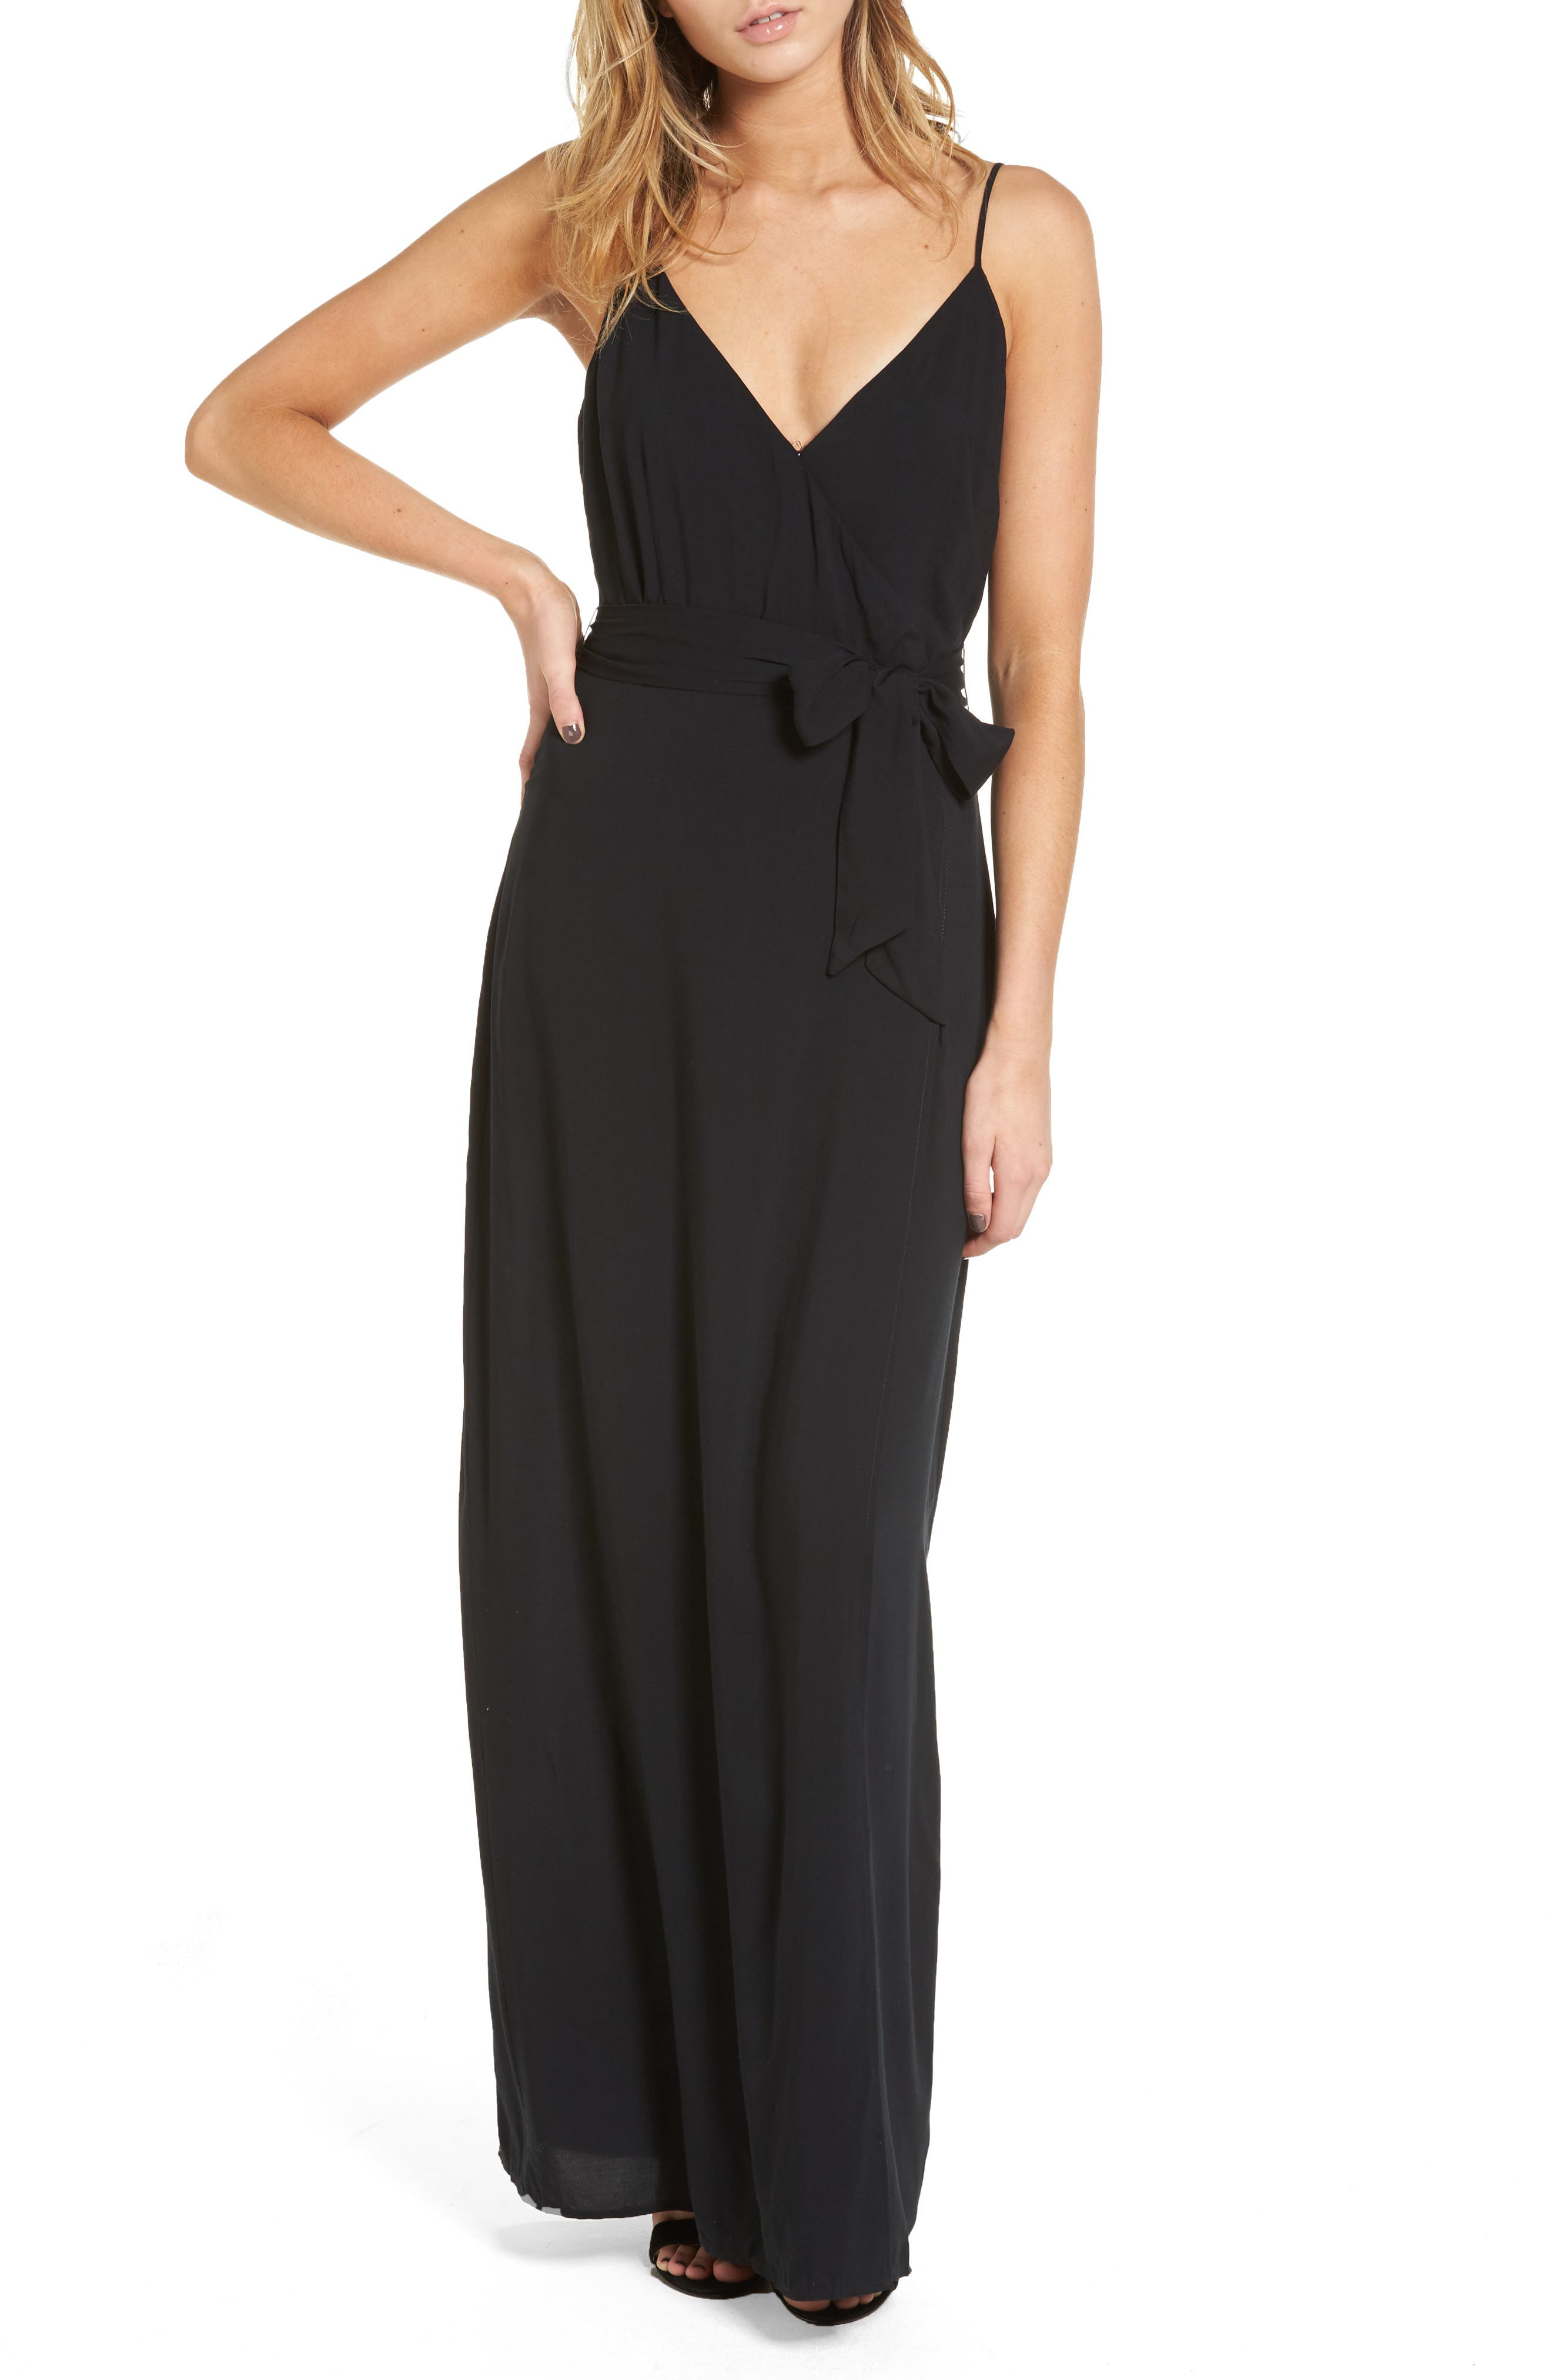 Regina Maxi Dress,                         Main,                         color, Black